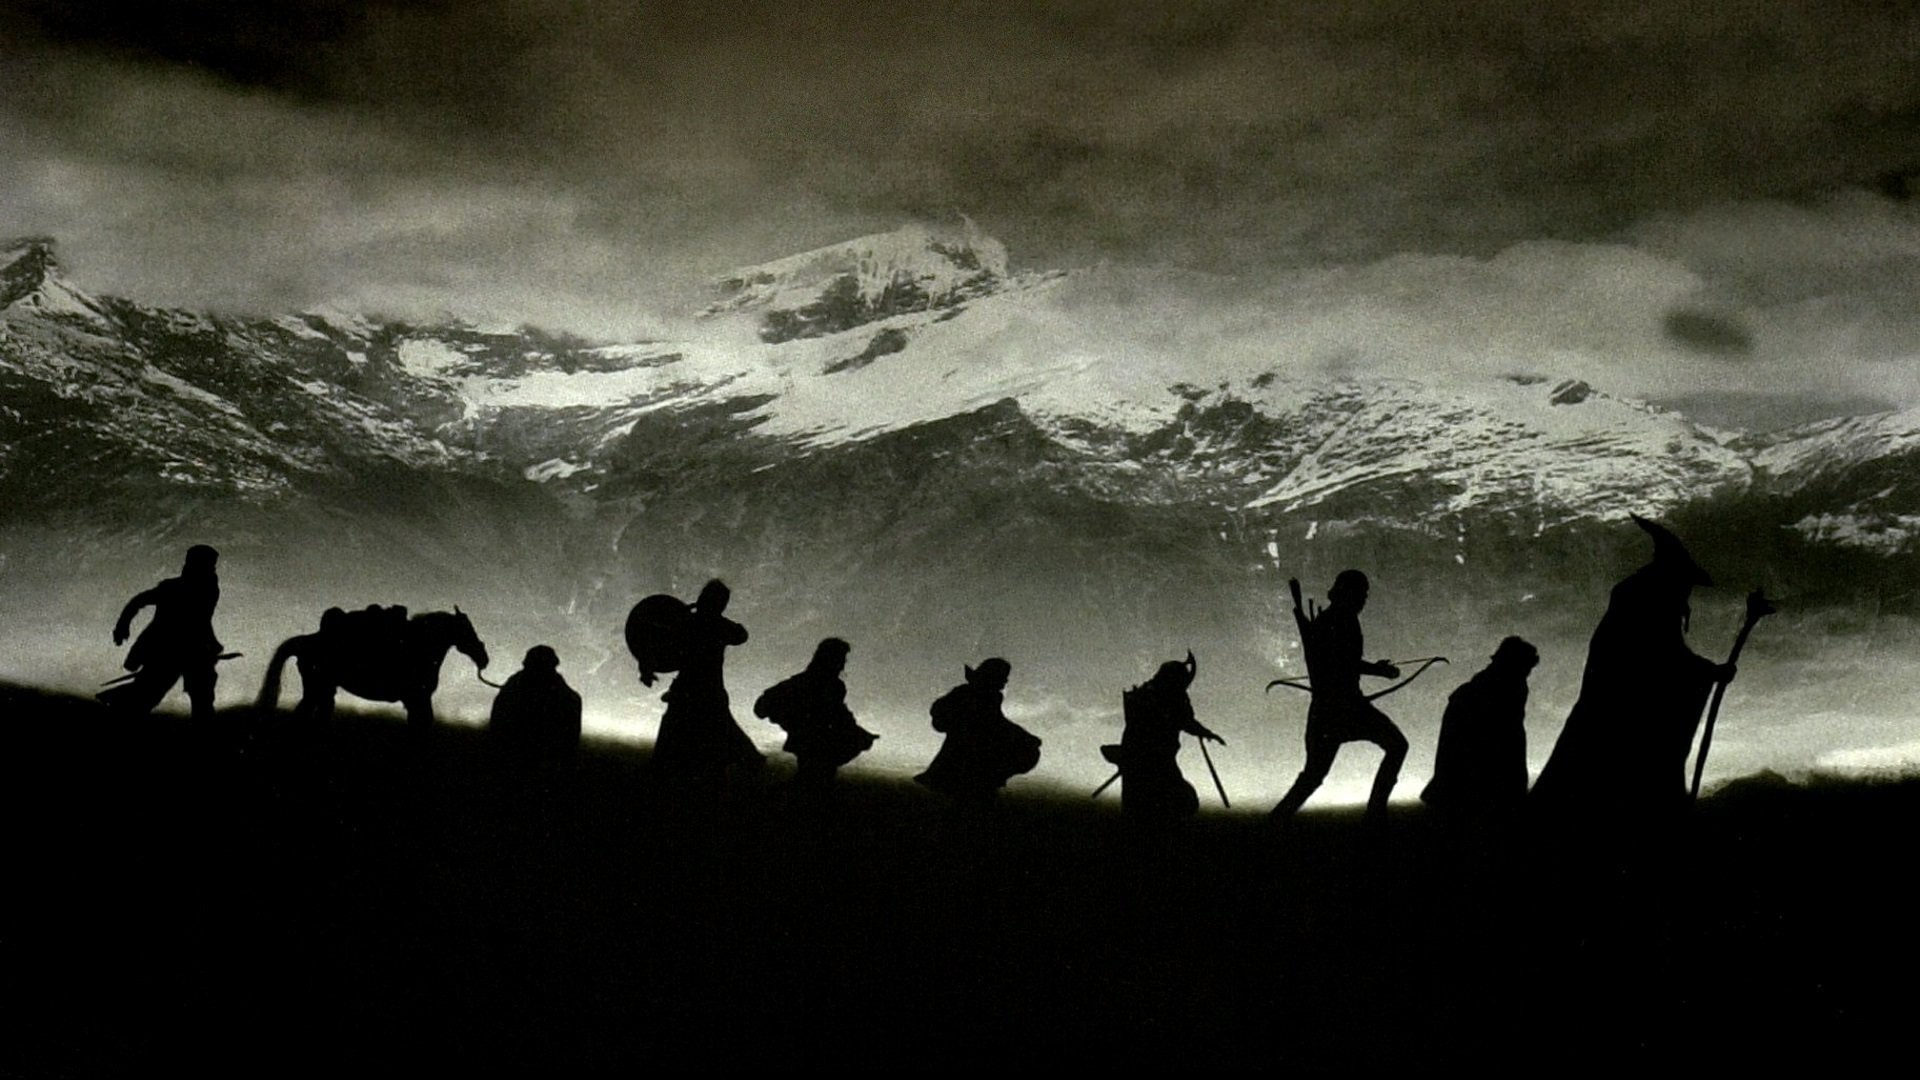 Movie Review – Lord Of The Rings, The: The Future – From The Hobbit to The Grey Havens